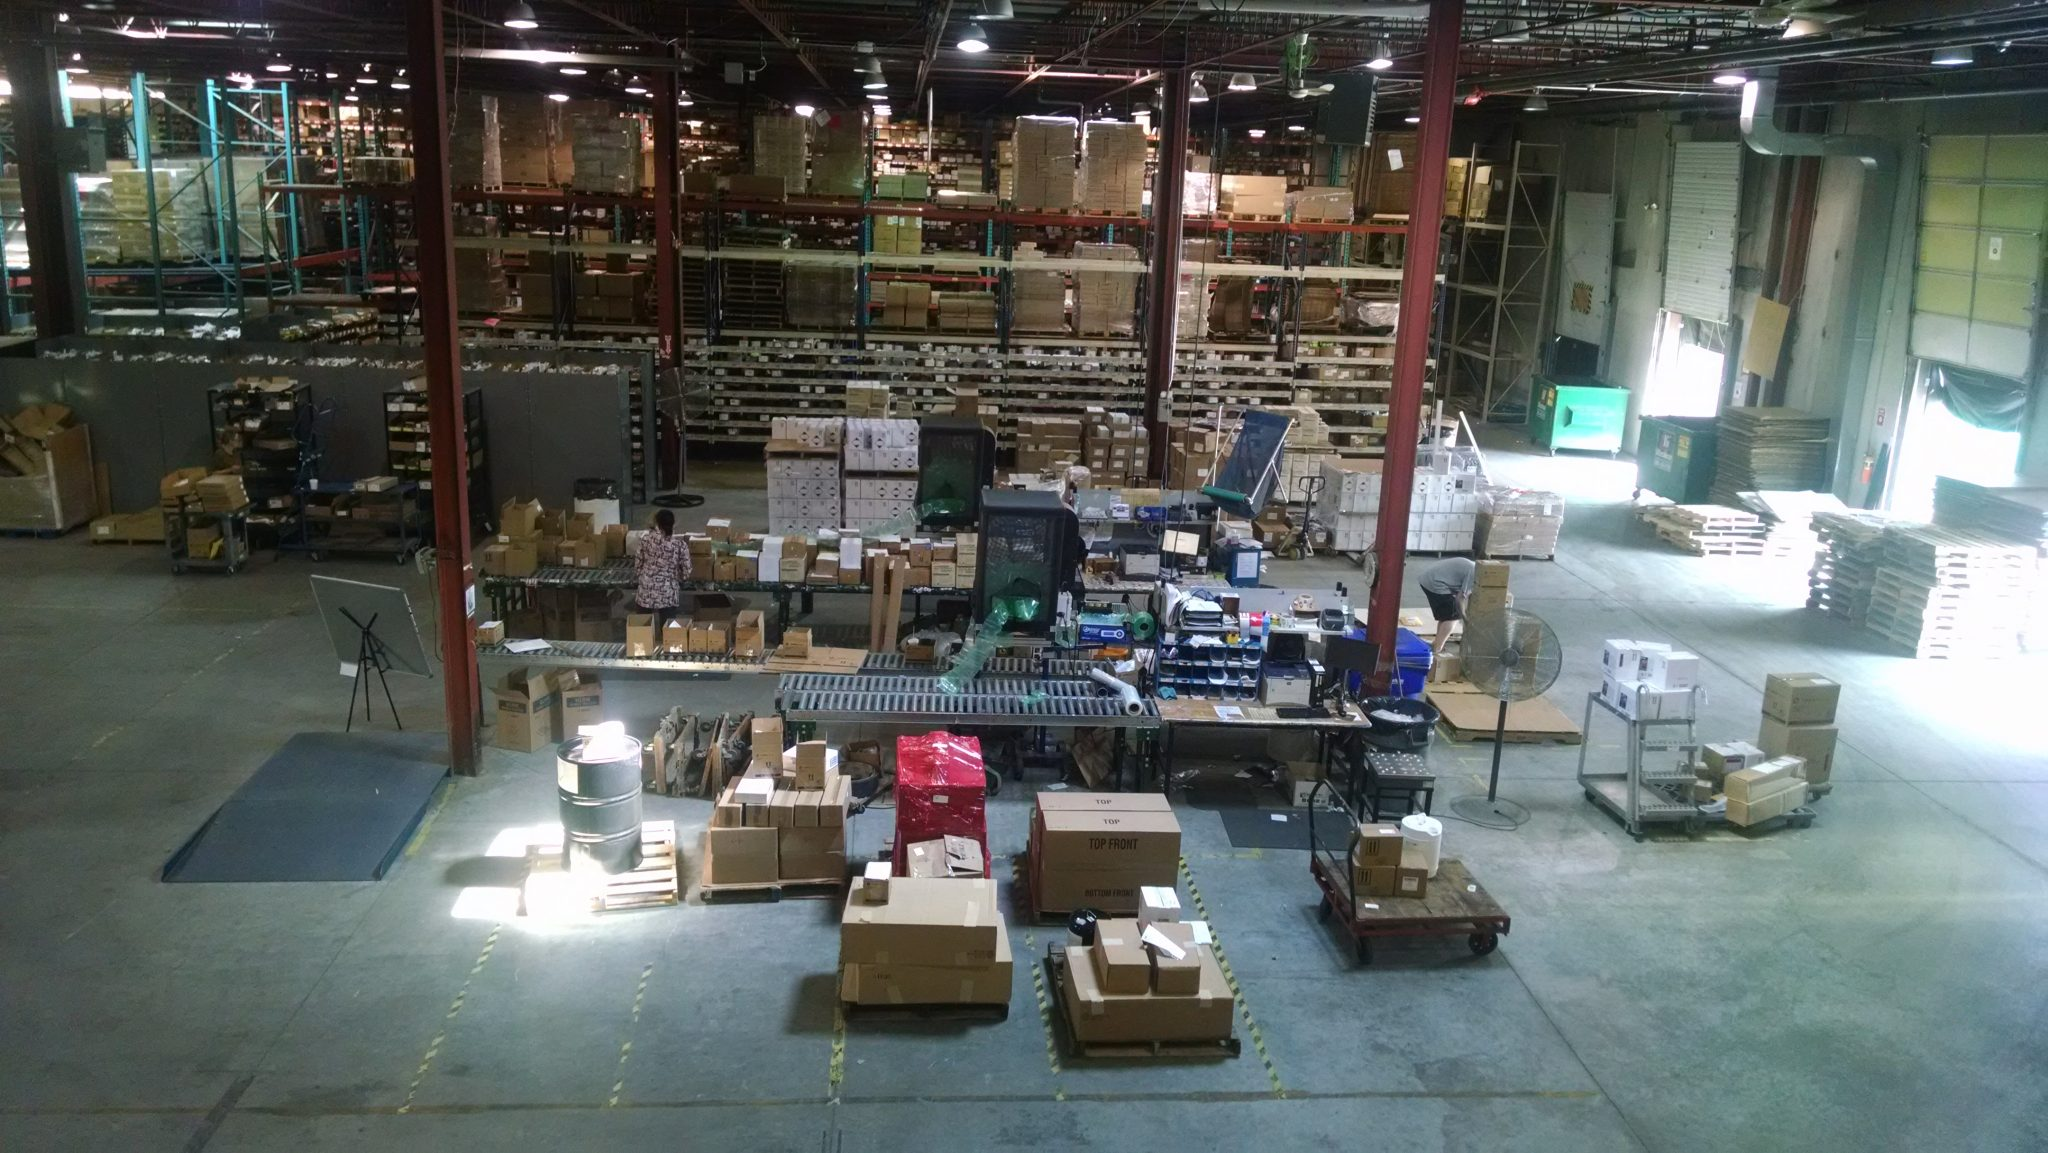 Lawson Products Mississauga Distribution Center before LED conversion